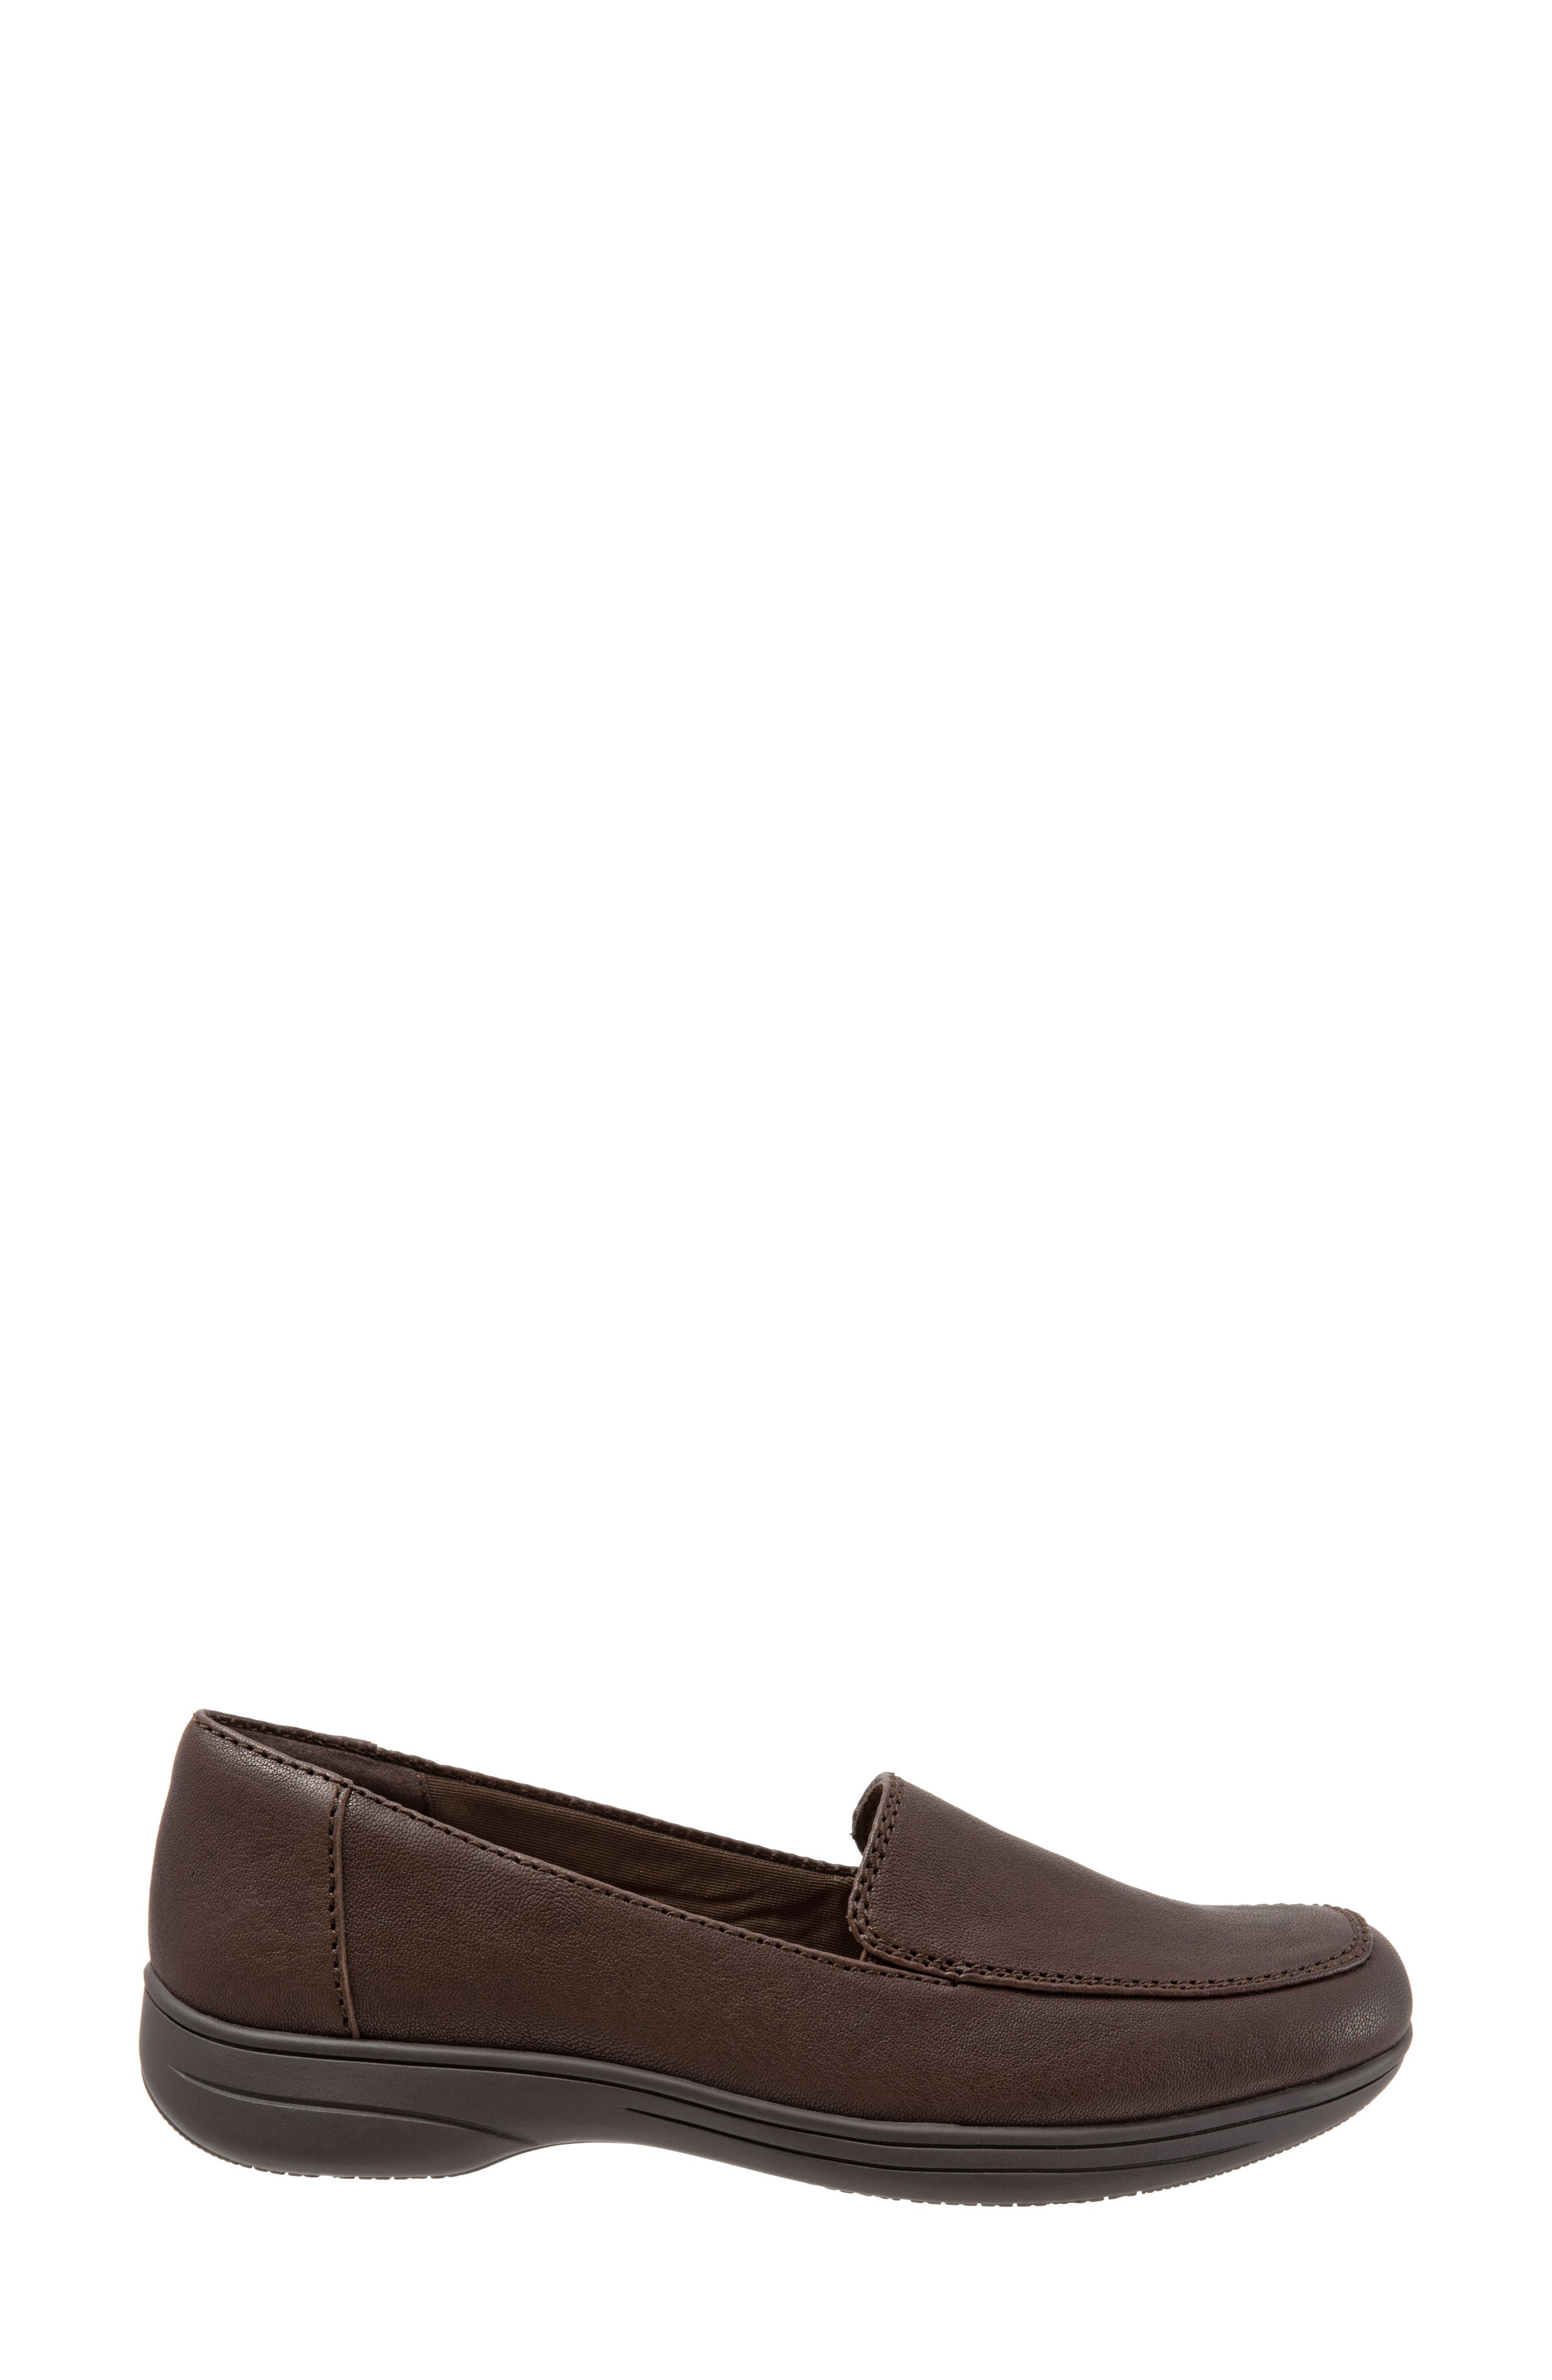 Jacob Loafer,                             Alternate thumbnail 3, color,                             DARK BROWN LEATHER